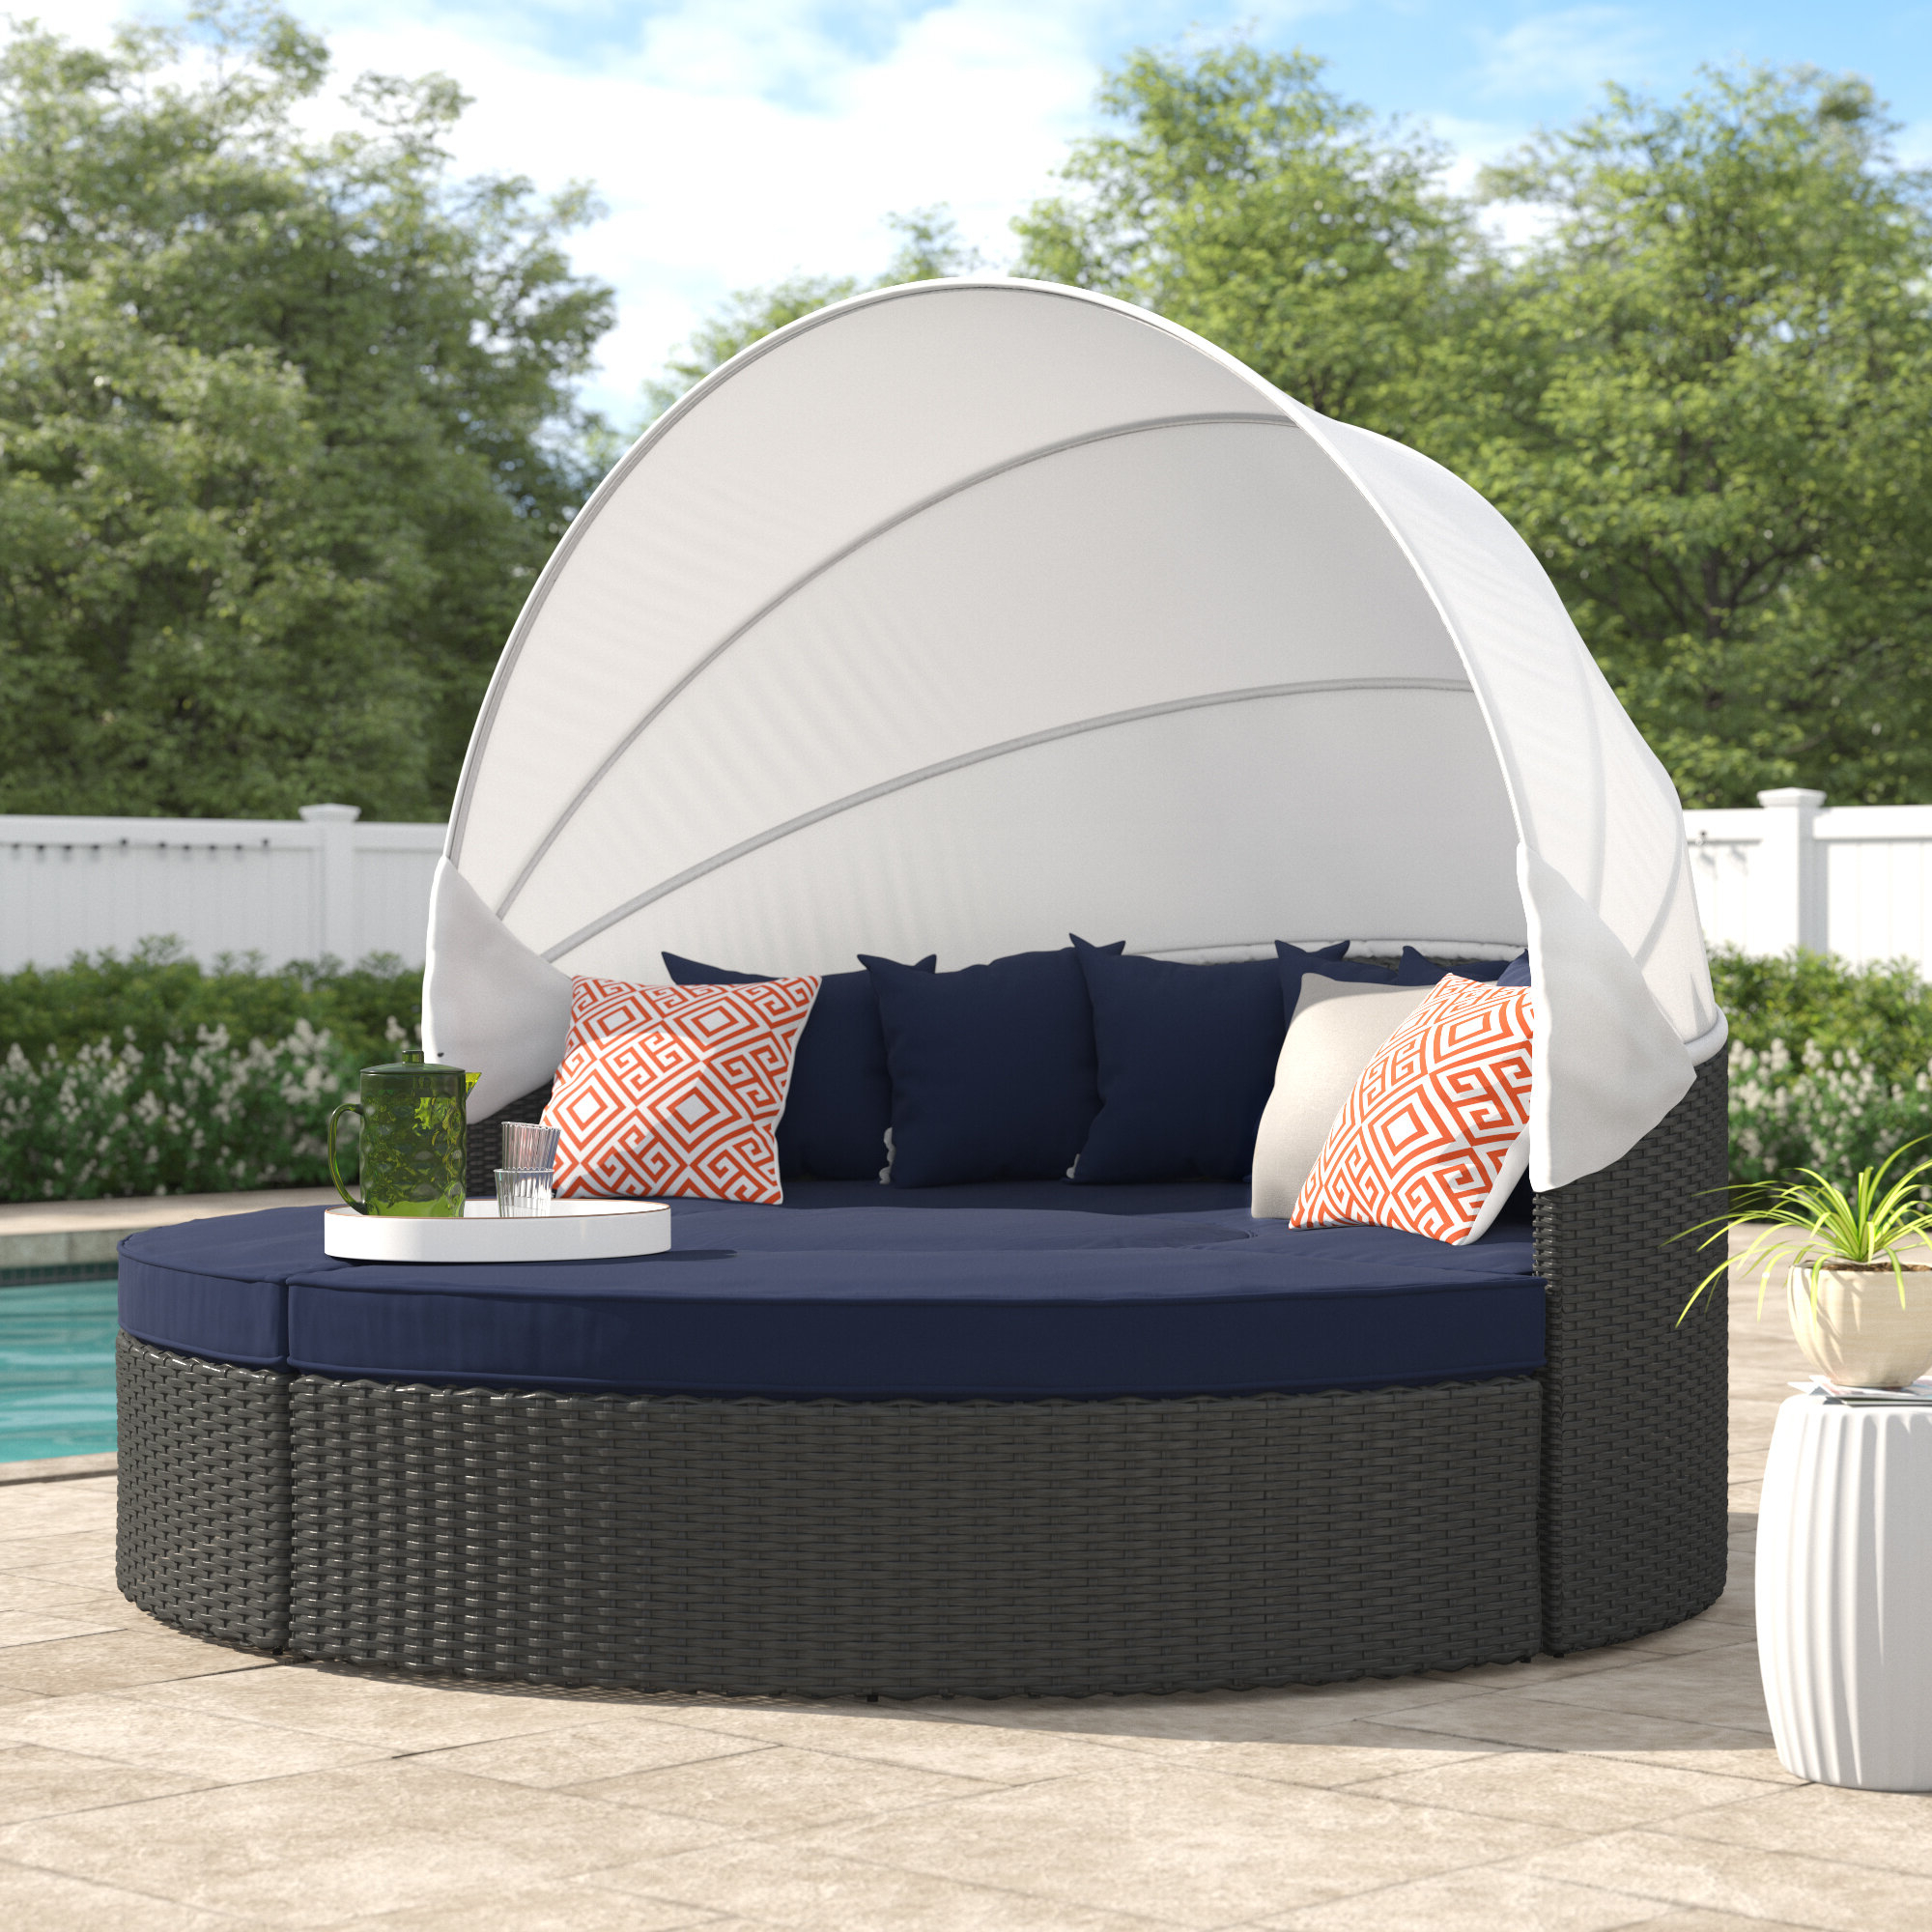 Most Popular Harlow Patio Daybeds With Cushions Intended For Tripp Patio Daybed With Sunbrella Cushions (View 14 of 20)